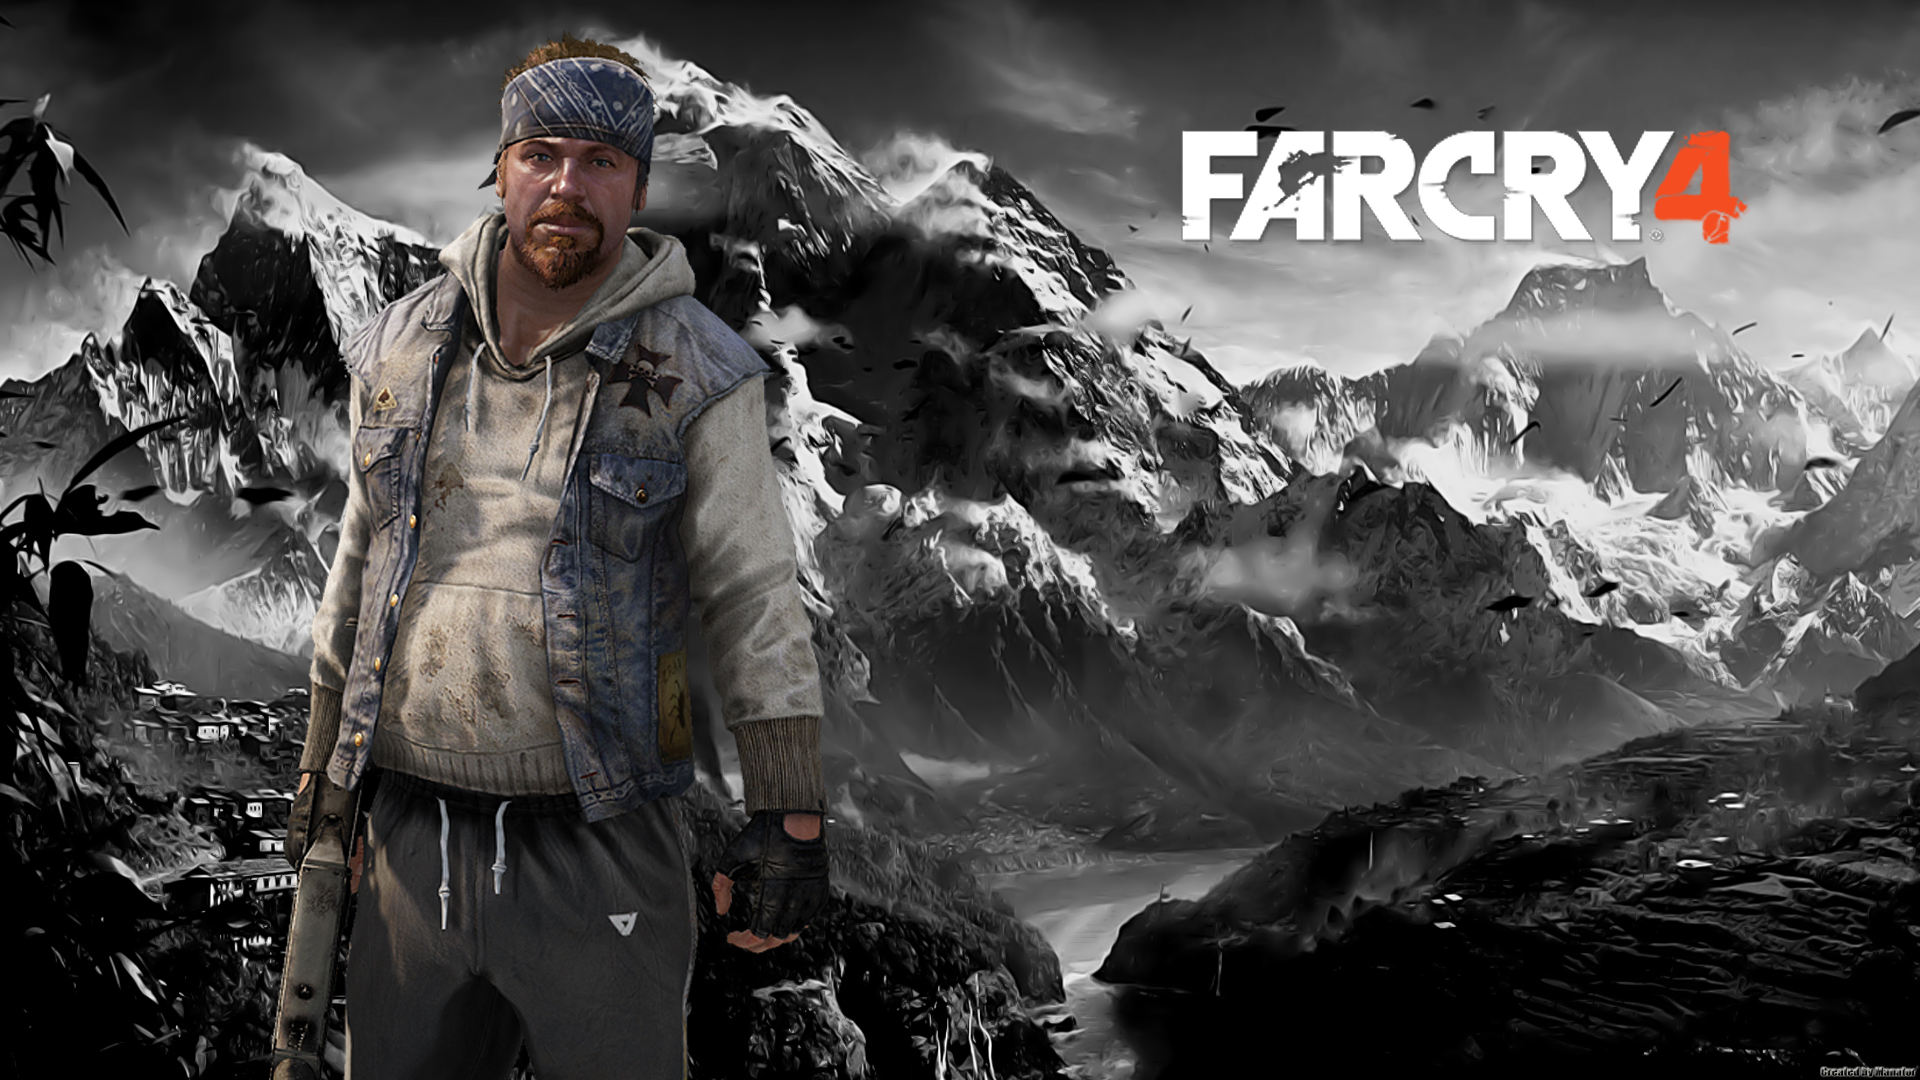 far cry 4 wallpaper free downloads #9025 wallpaper | walldiskpaper